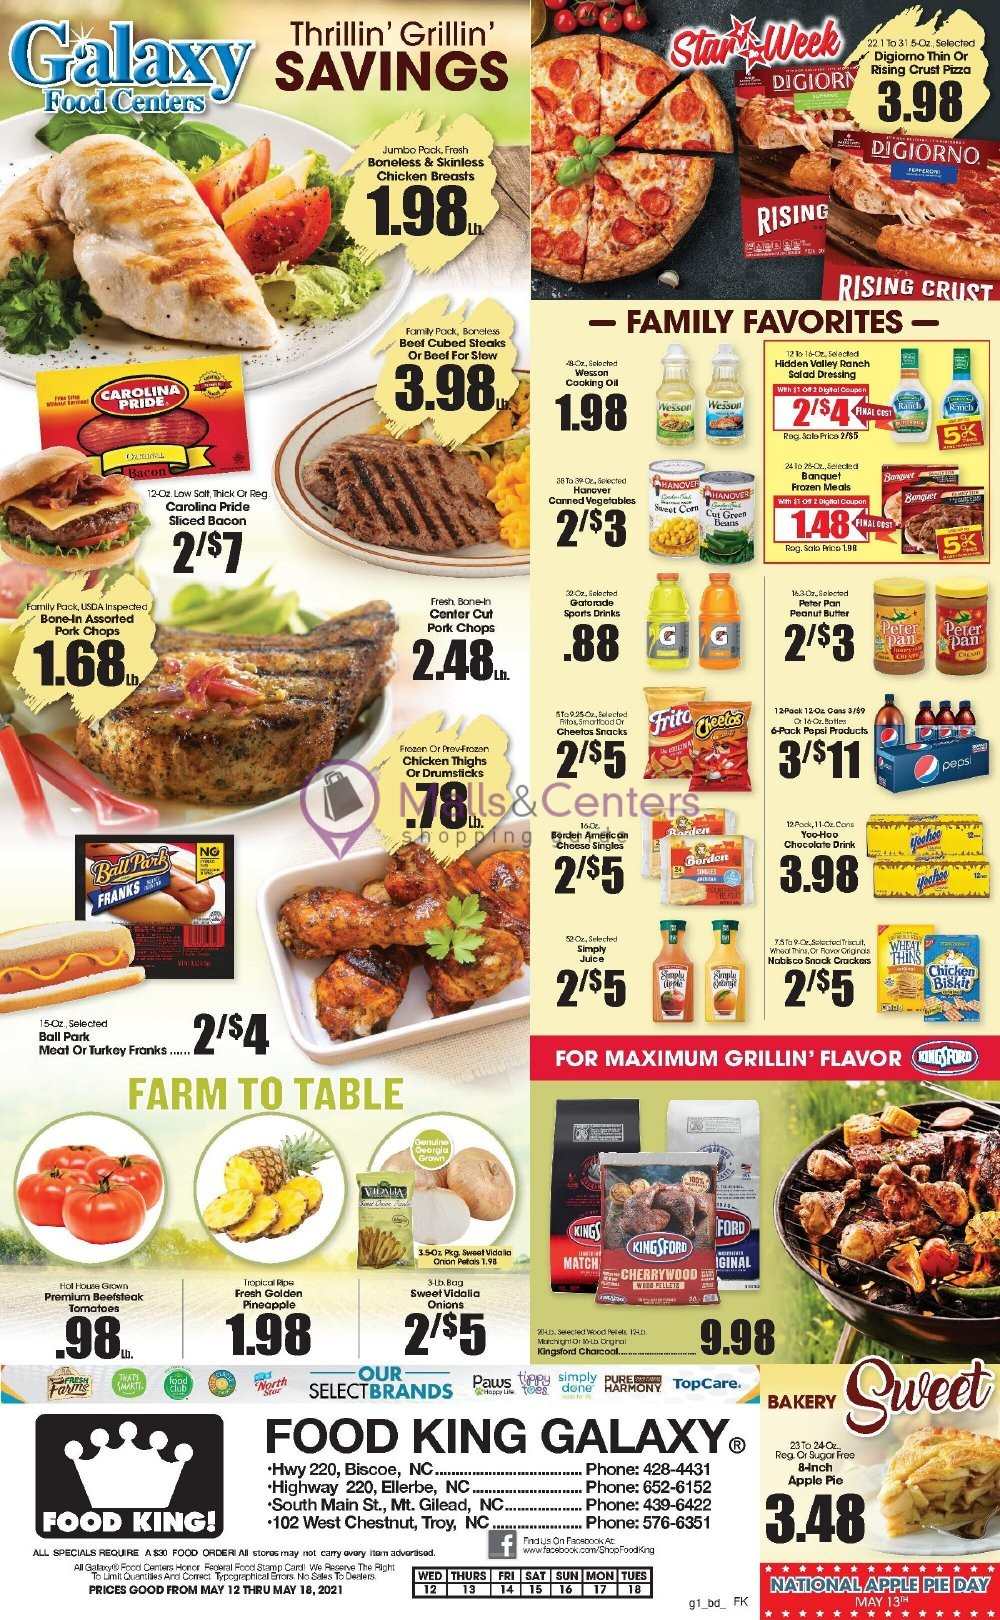 weekly ads Food King - page 1 - mallscenters.com